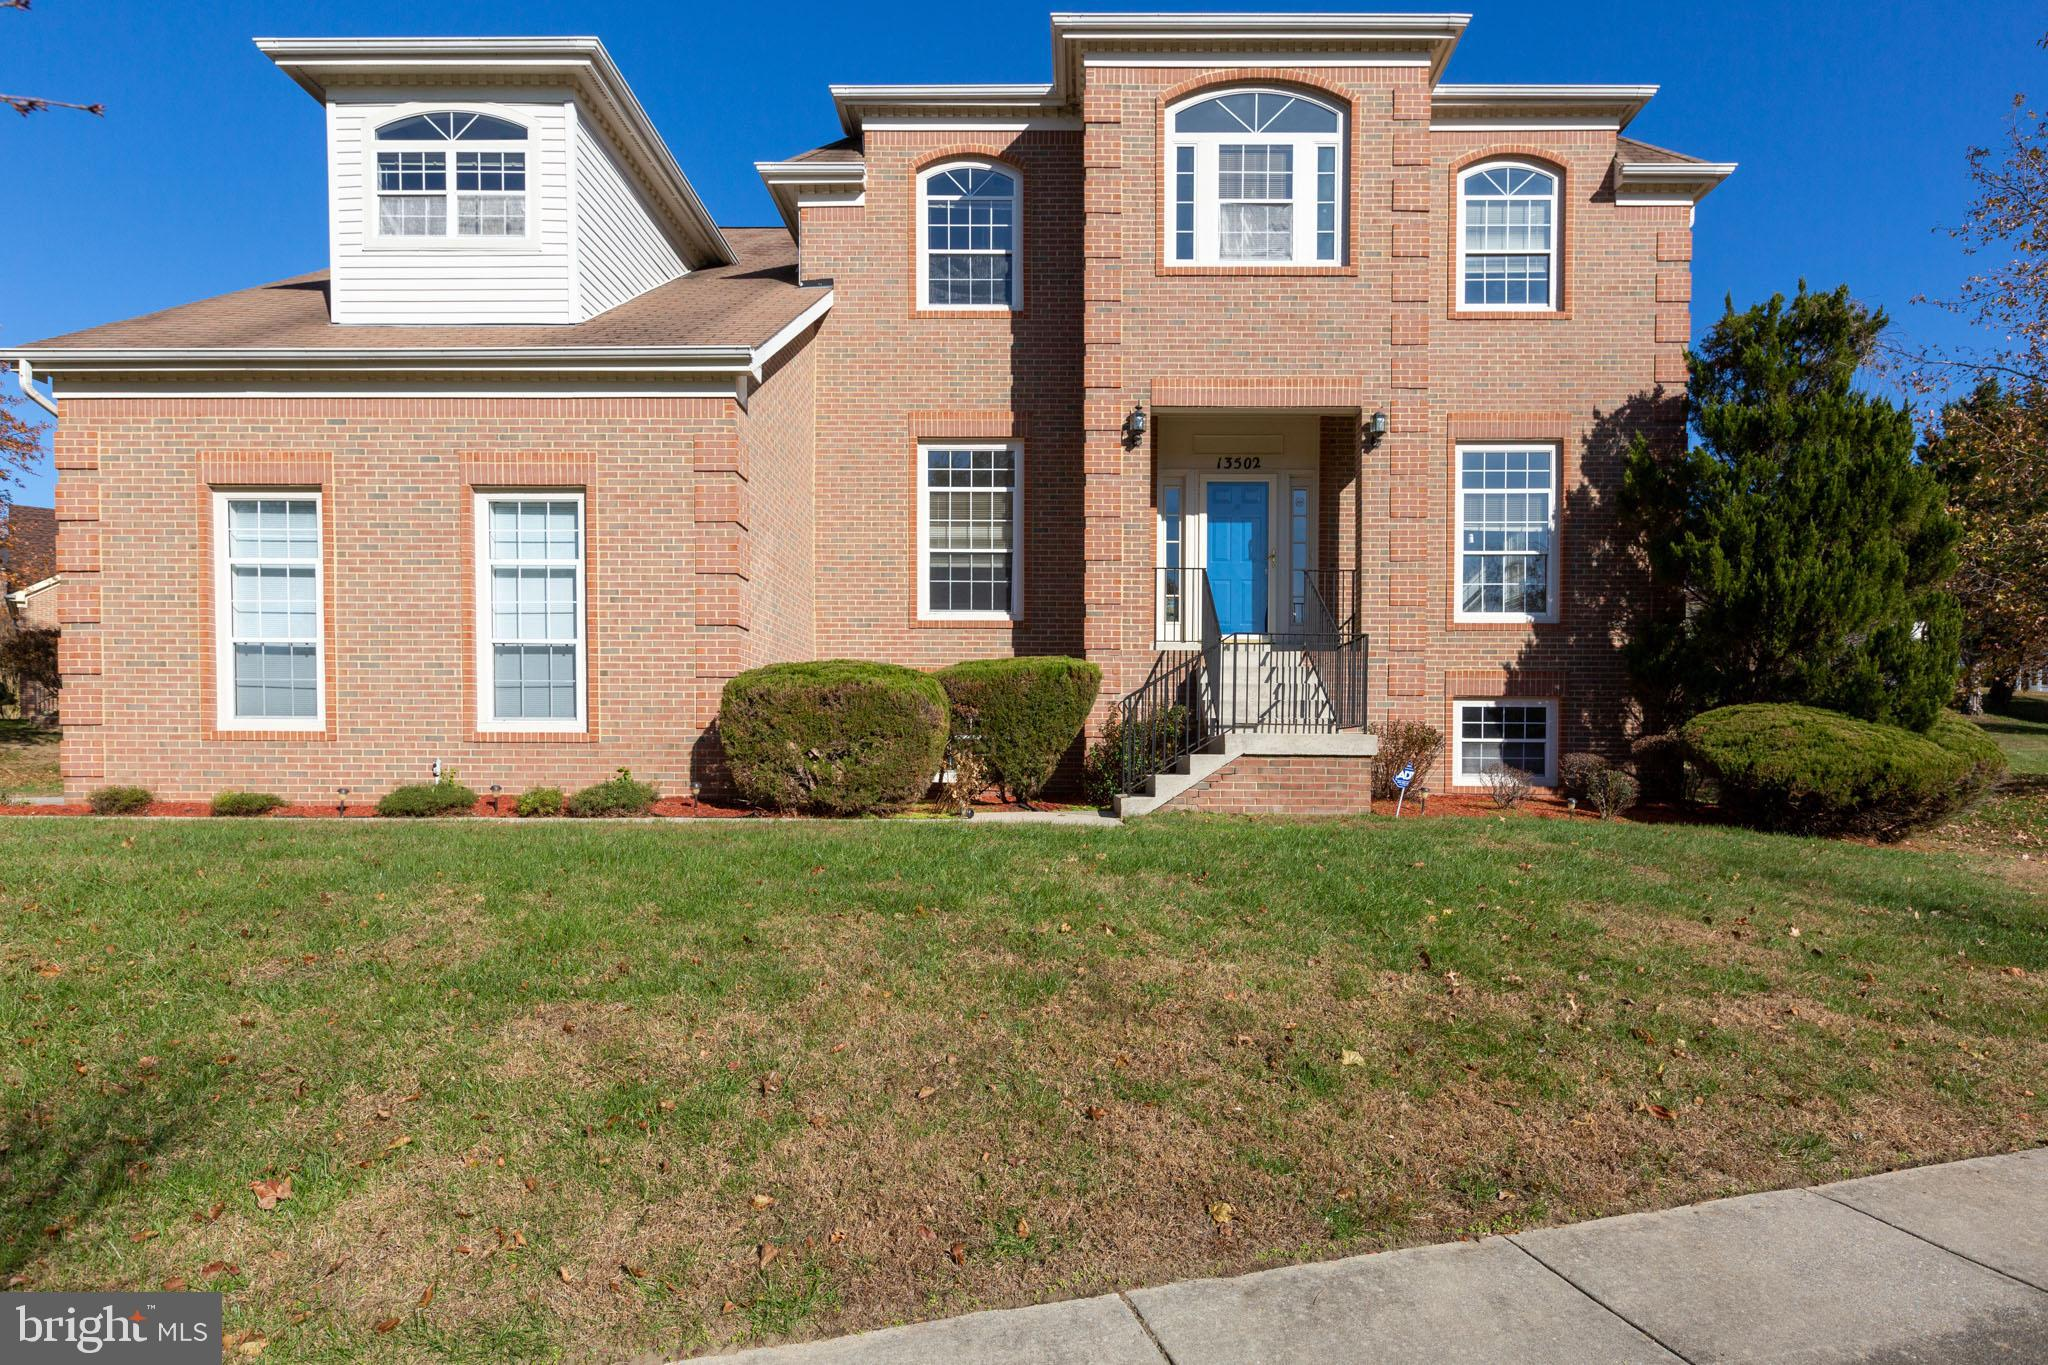 Beautifully updated  4 bedroom 2.5 bath home in Perrywood. A light filled 2 story entry way greets a